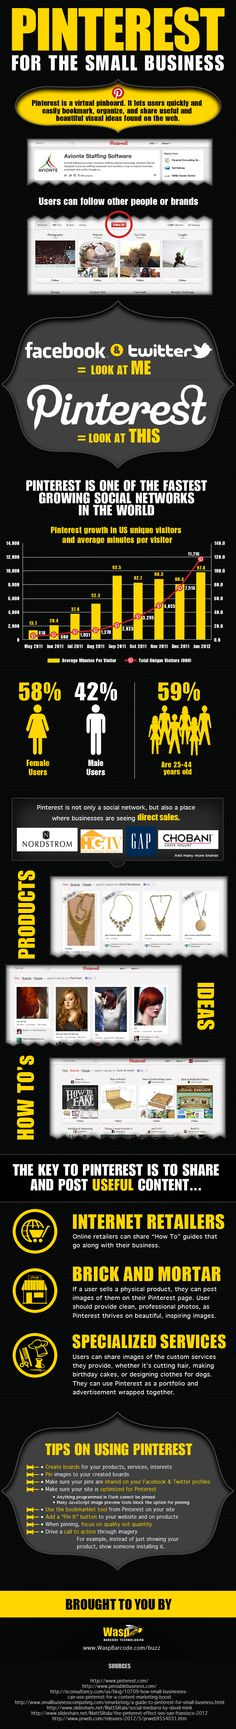 Pinterest for Small Business #infographic